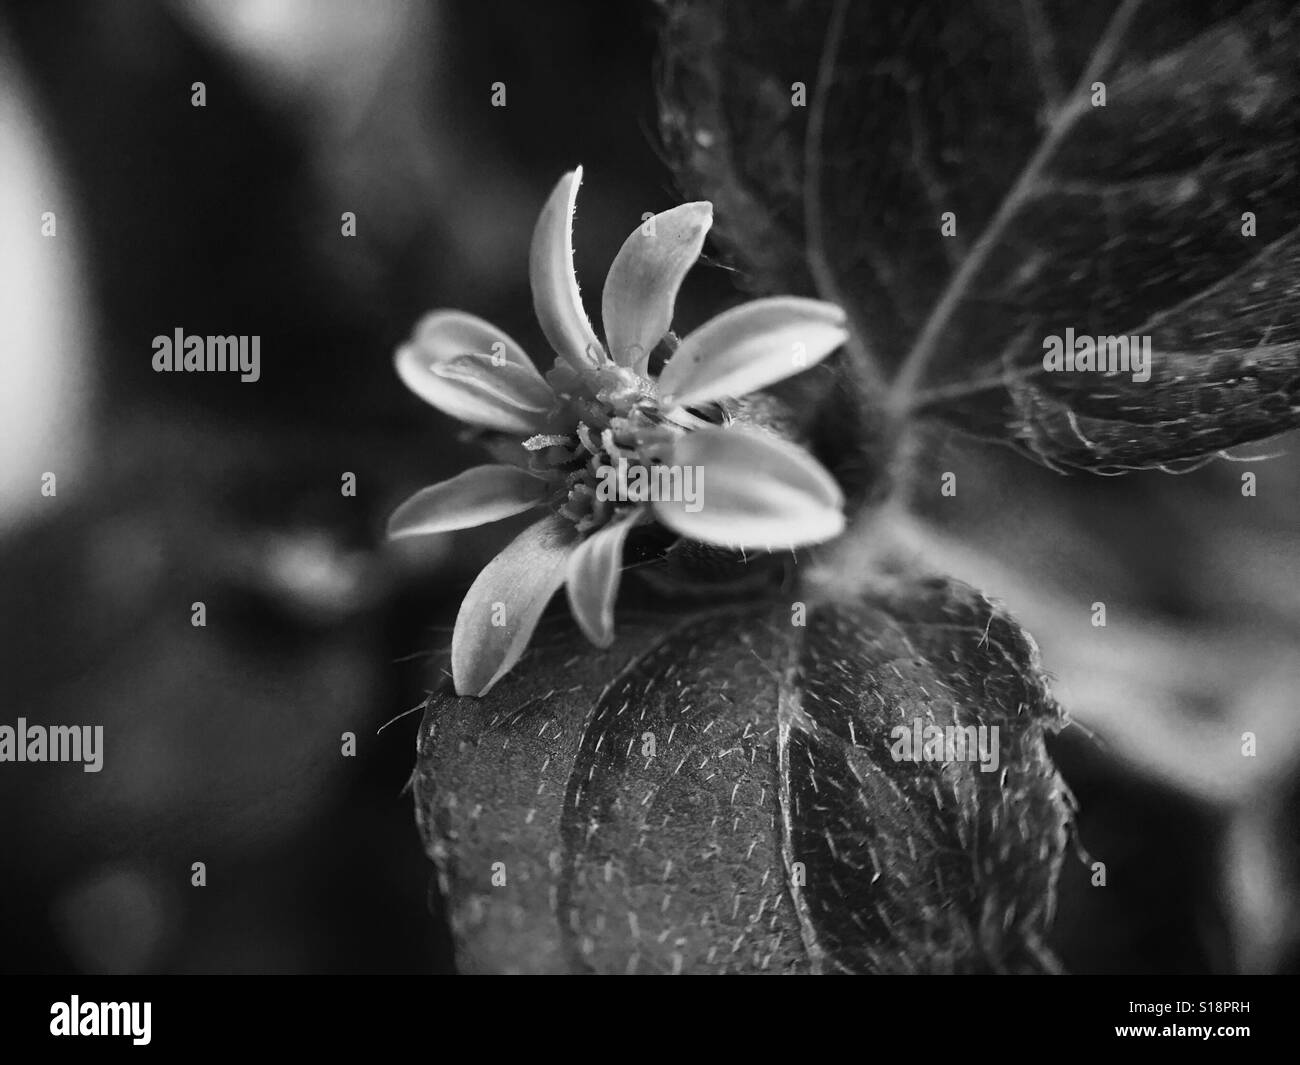 Black and White Miniscule Flower - Stock Image